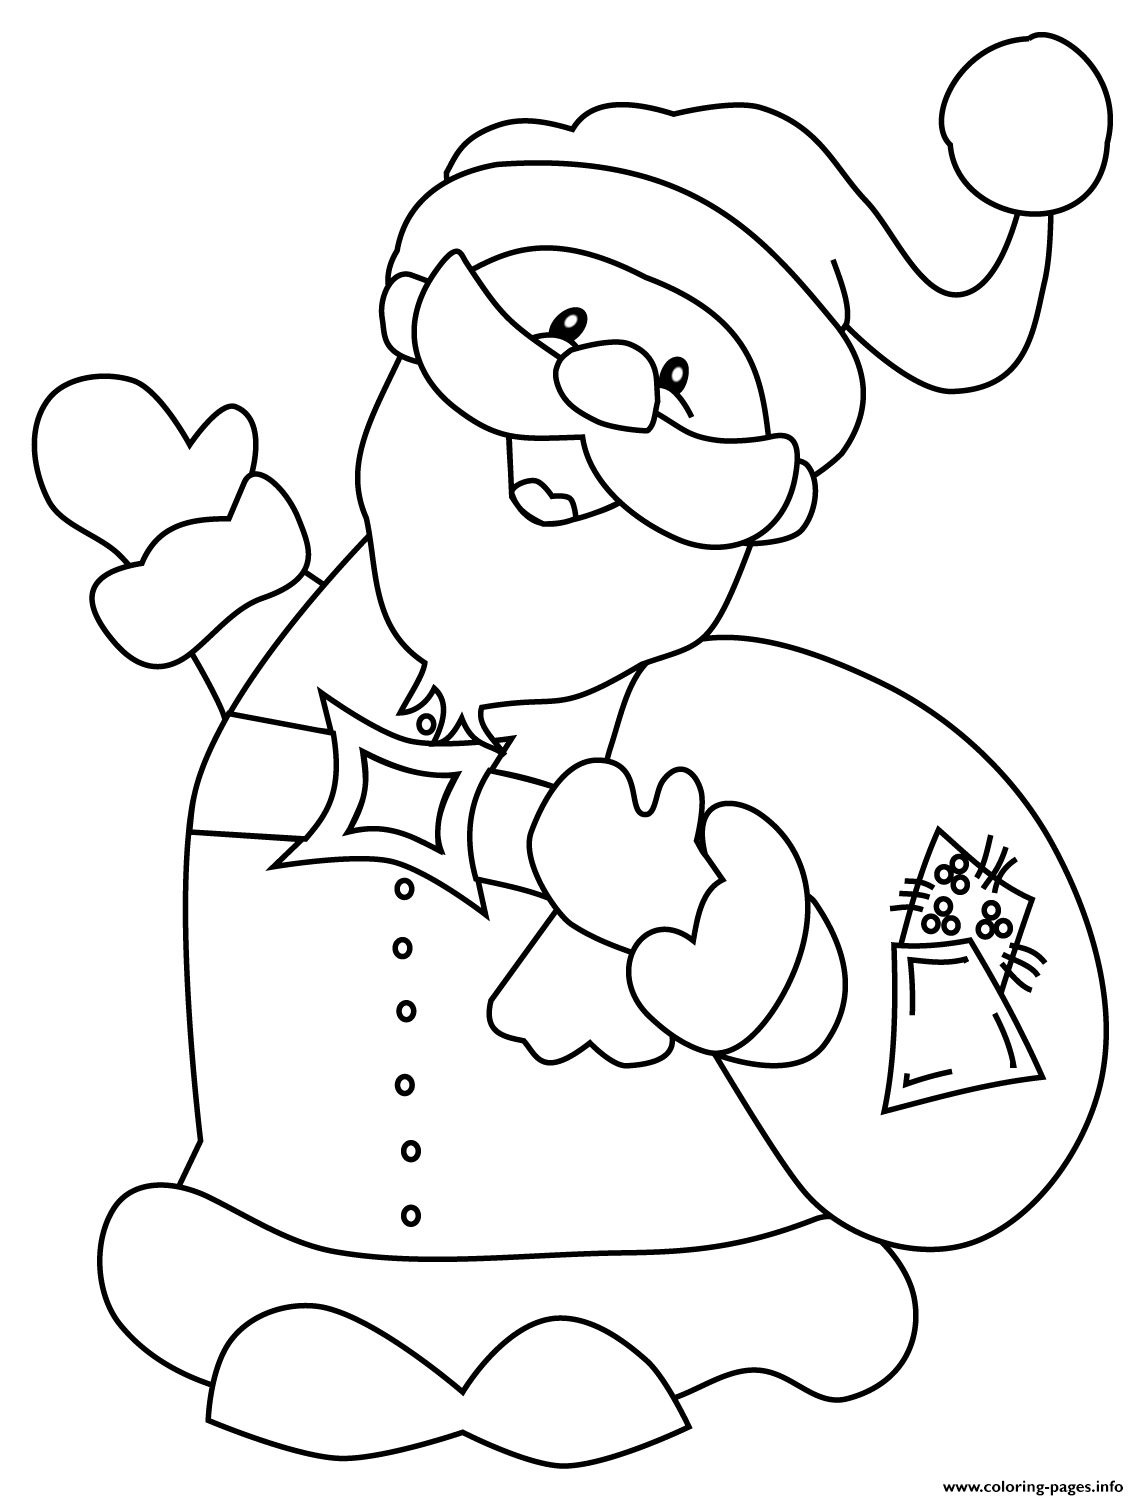 Happy Santa Claus Christmas coloring pages